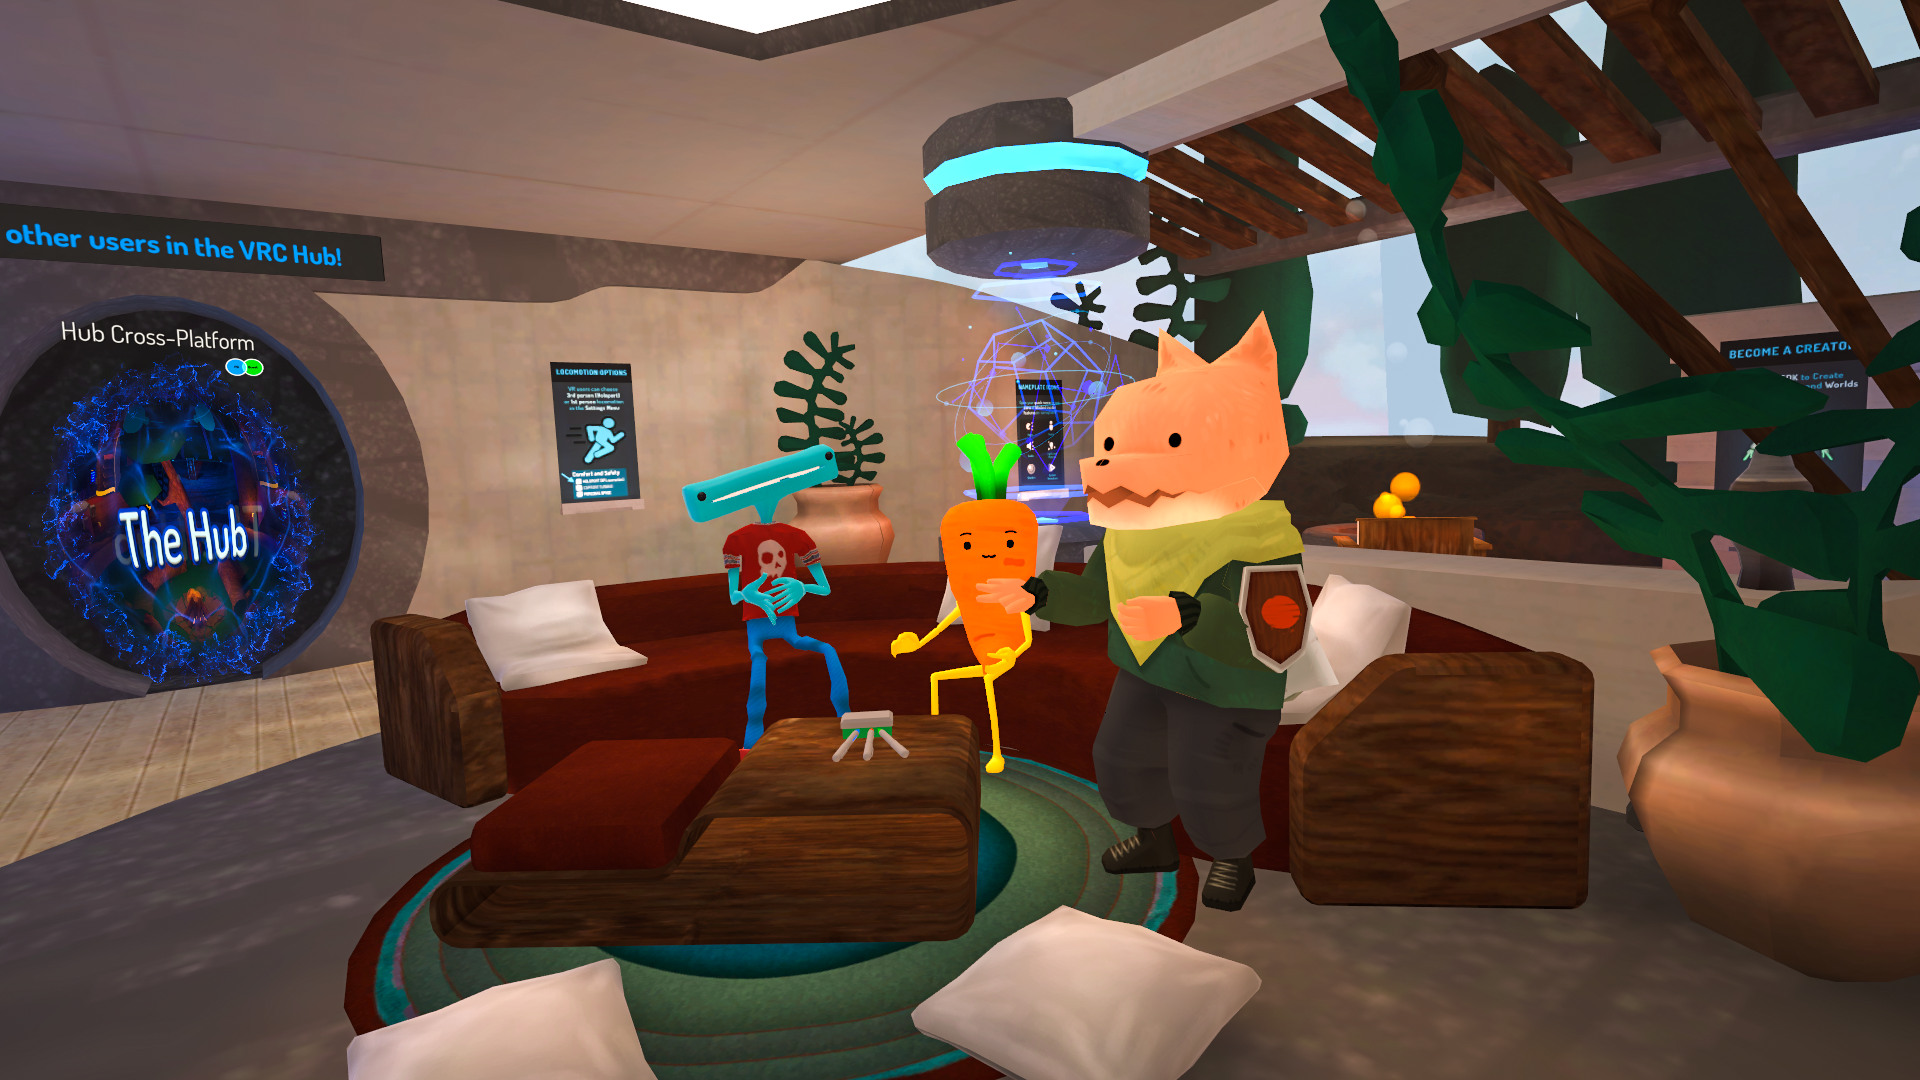 Welcome To Your New Home And Hub By Vrchat Vrchat Medium